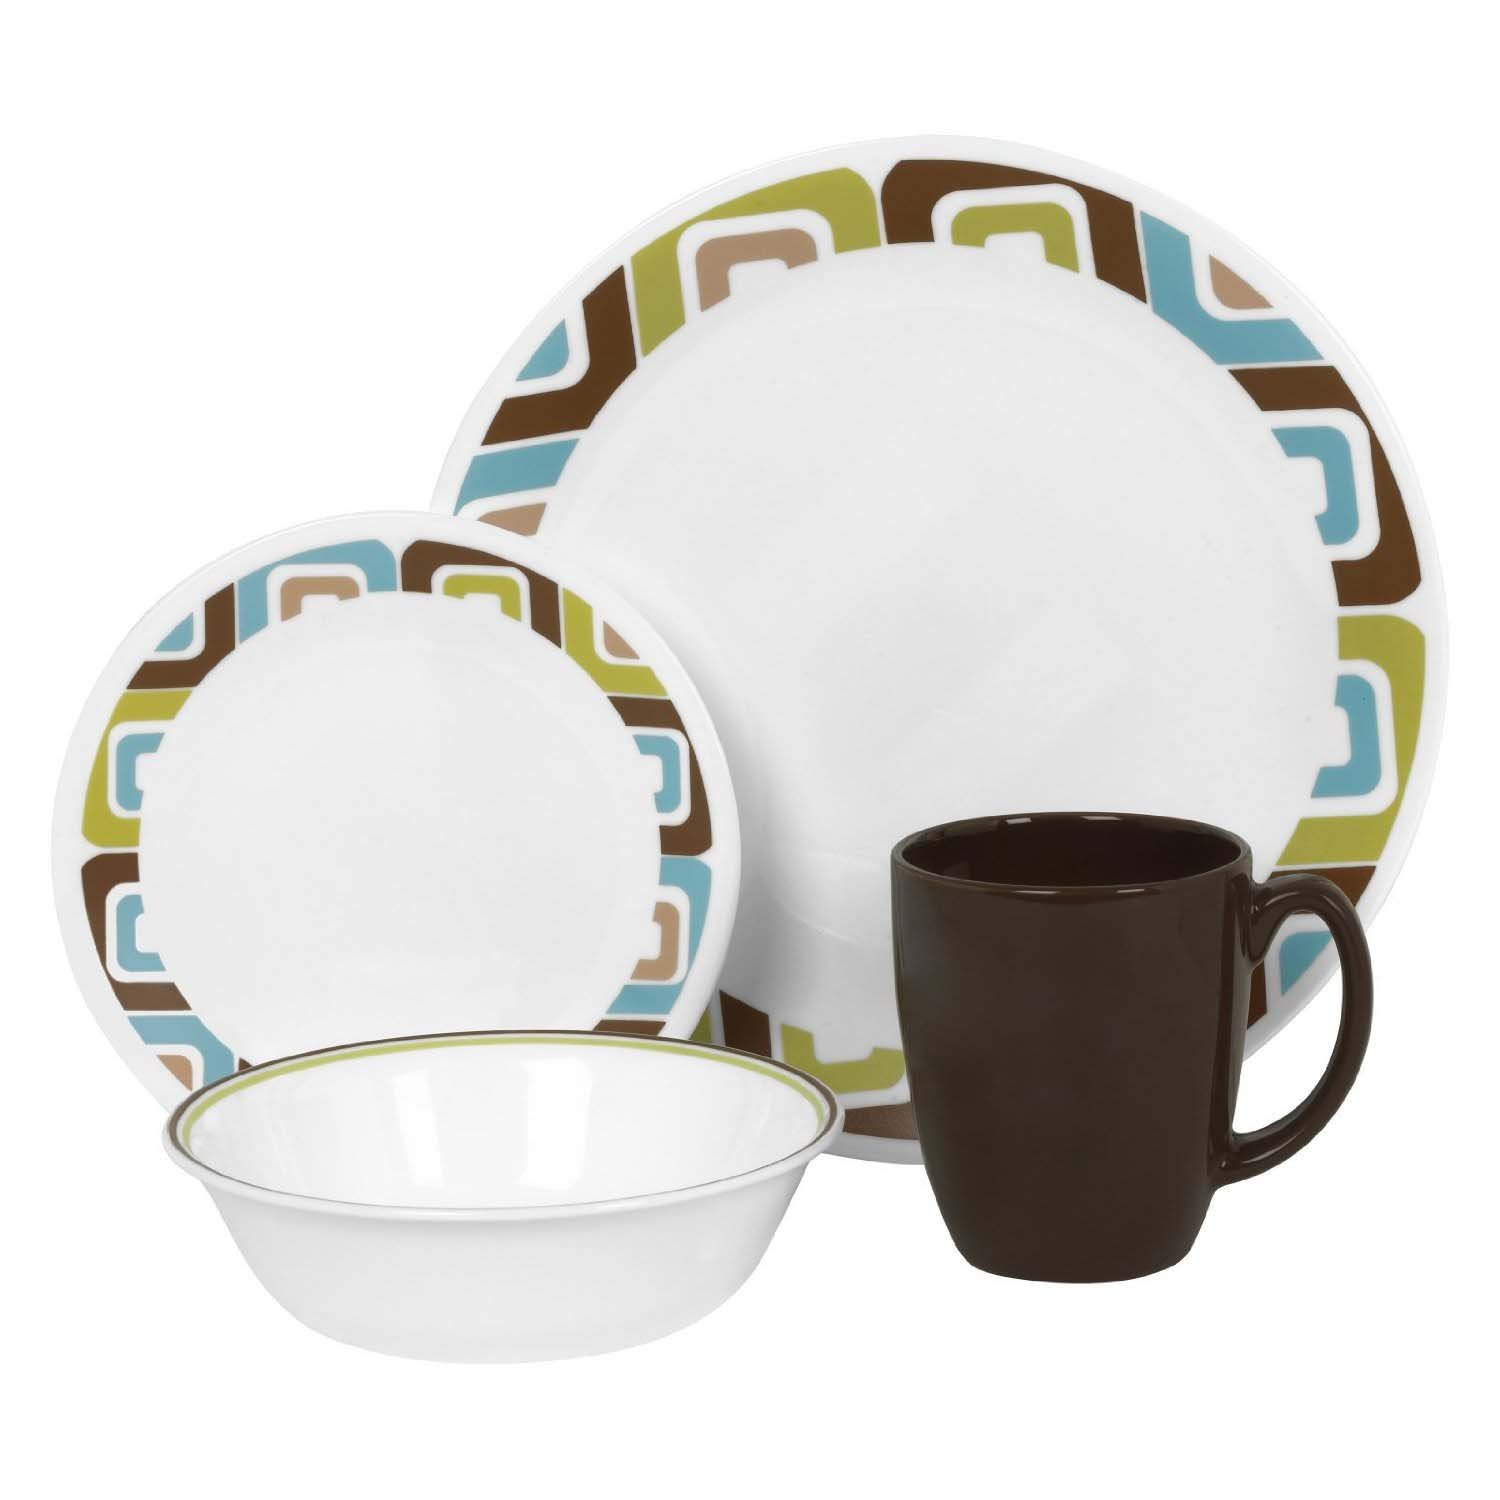 Amazon.com : Corelle Dishes Set Corelle dishes are fantastic for a mobile life – we use a set on both the RV and boat. Lightweight, come in many fun patterns, pretty indestructible and microwave safe.